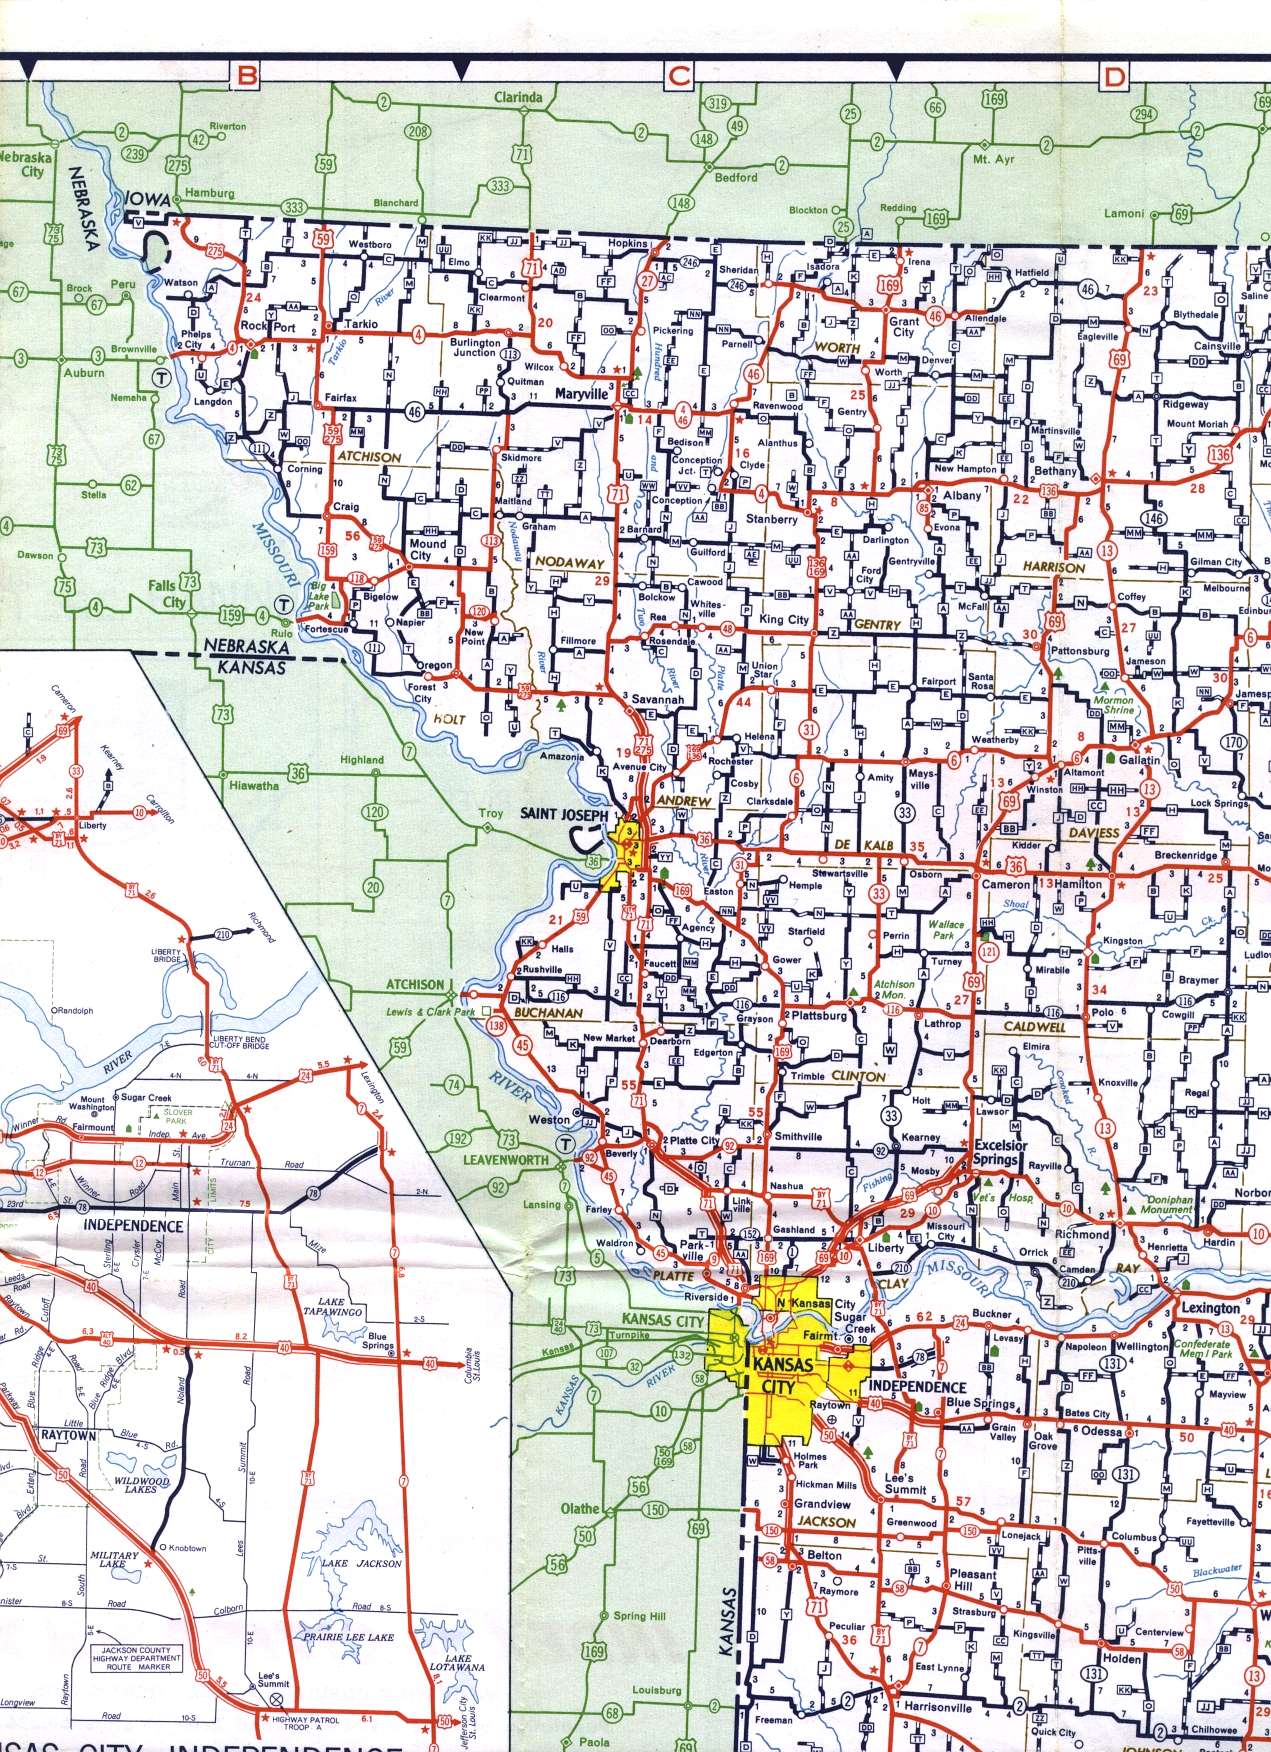 kansas map with cities and highways with Nw Corner on Arkansas besides Republican River Drainage Basin Landform Origins Colorado Nebraska And Kansas Usa Overview Essay additionally Missouri map additionally California Railway Map also Rhode Island.